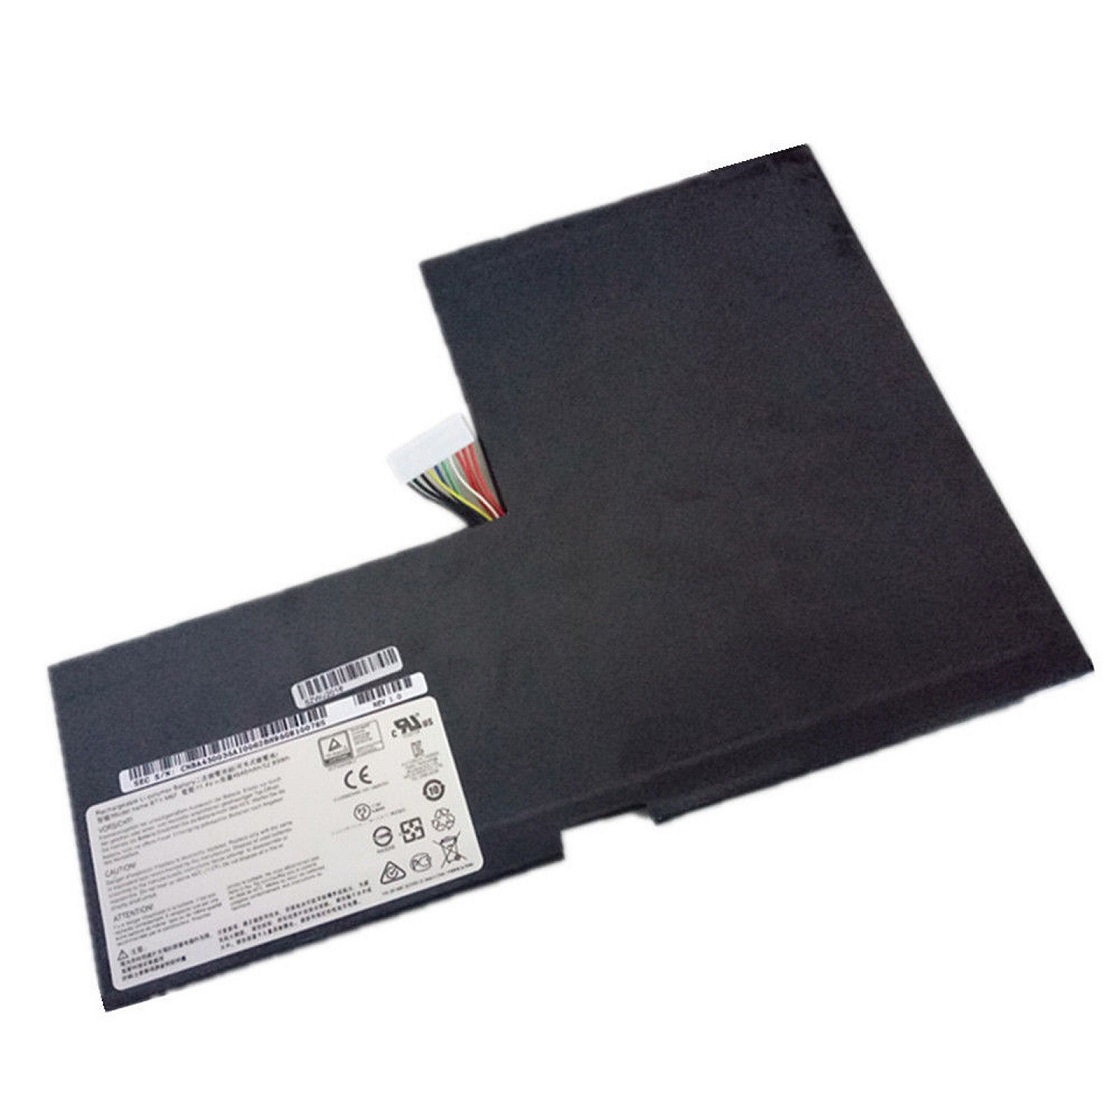 BTY-M6F MSI GS60 MS-16H2 2PL 6QE 2QE 6QC 6QC-257XCN compatible battery